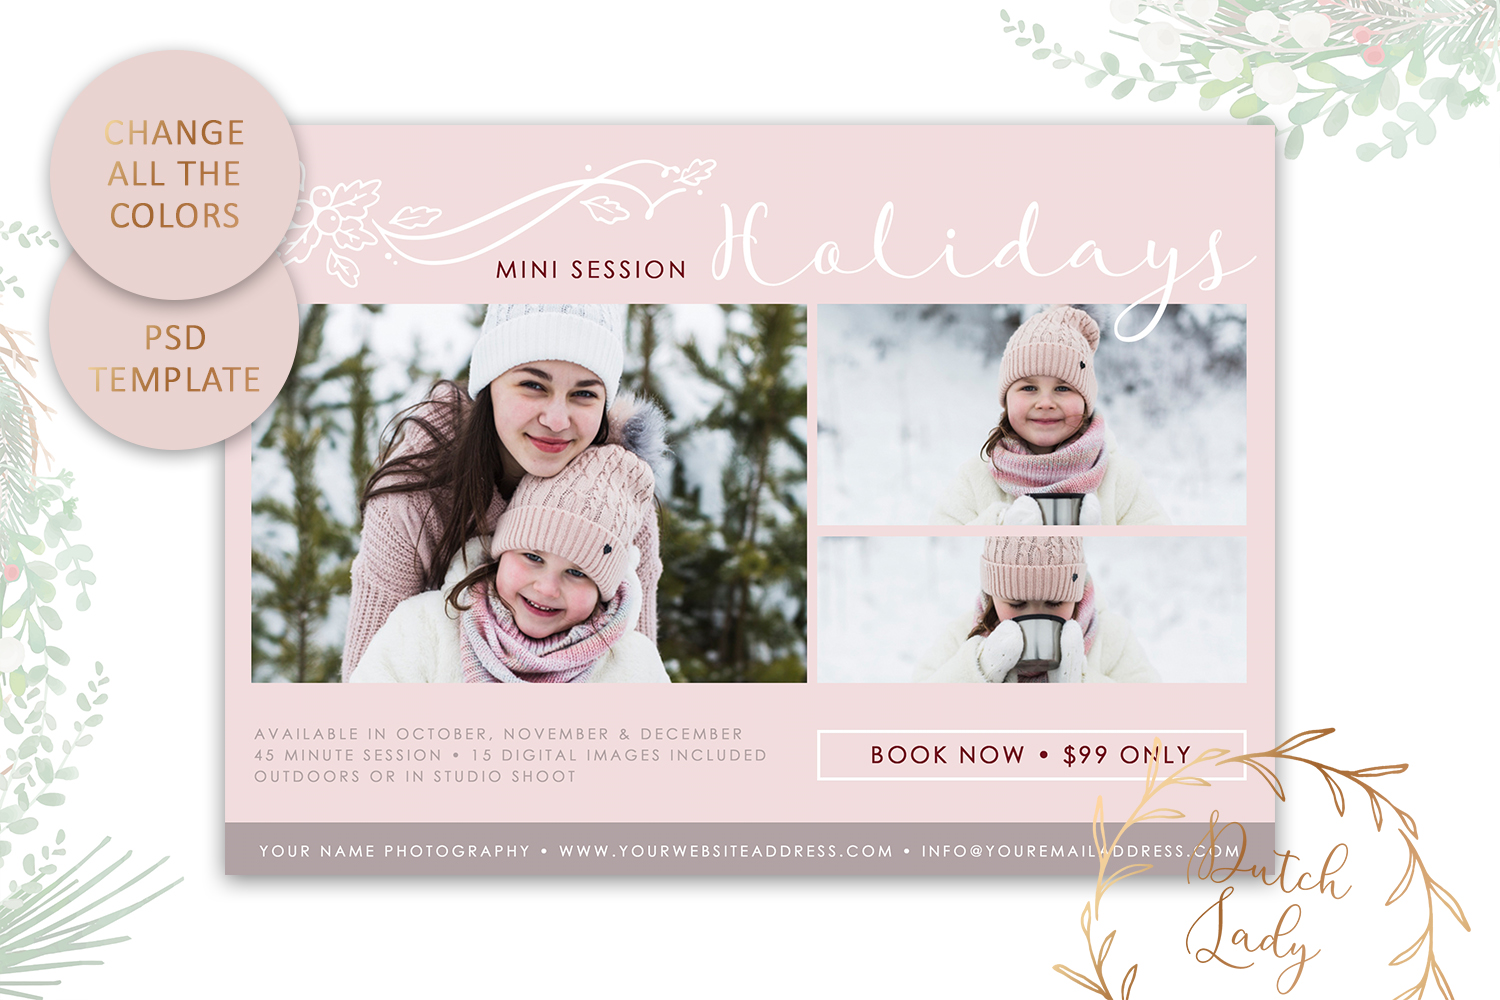 PSD Photo Mini Session Card Template - Design #21 example image 3